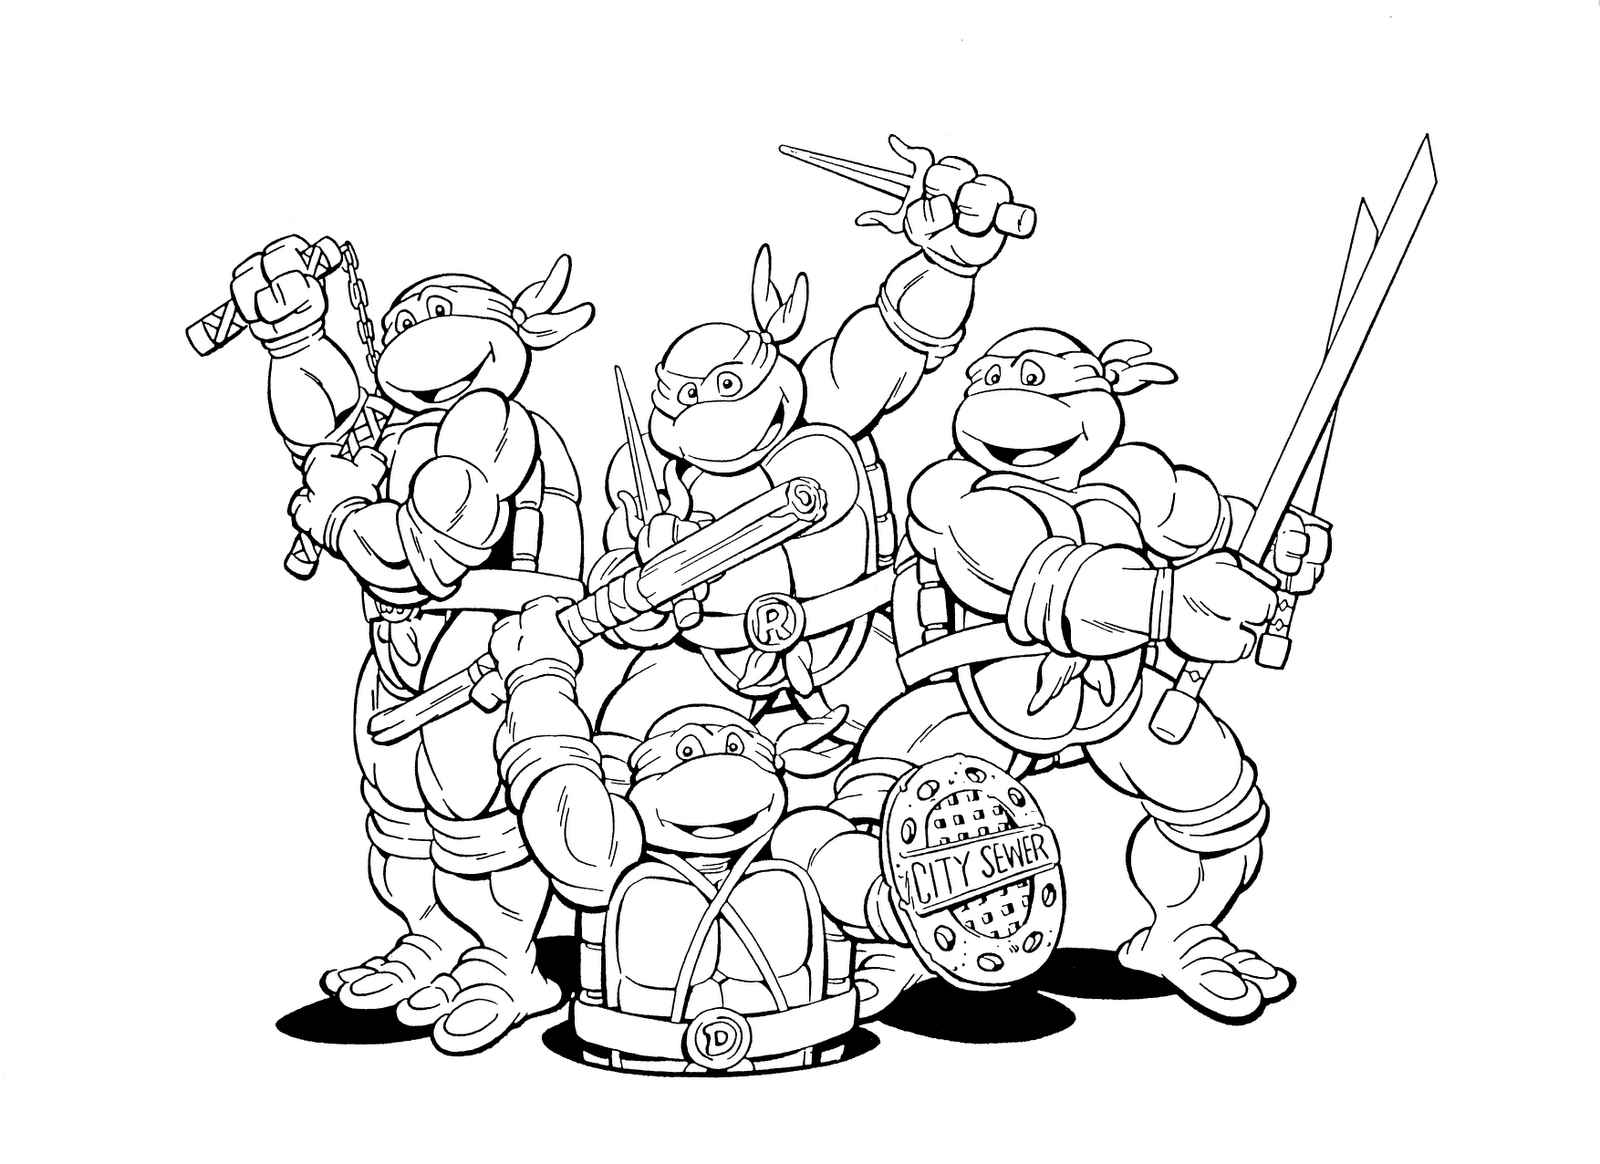 Teenage mutant ninja turtles coloring pages printable for Coloring pages turtles ninja